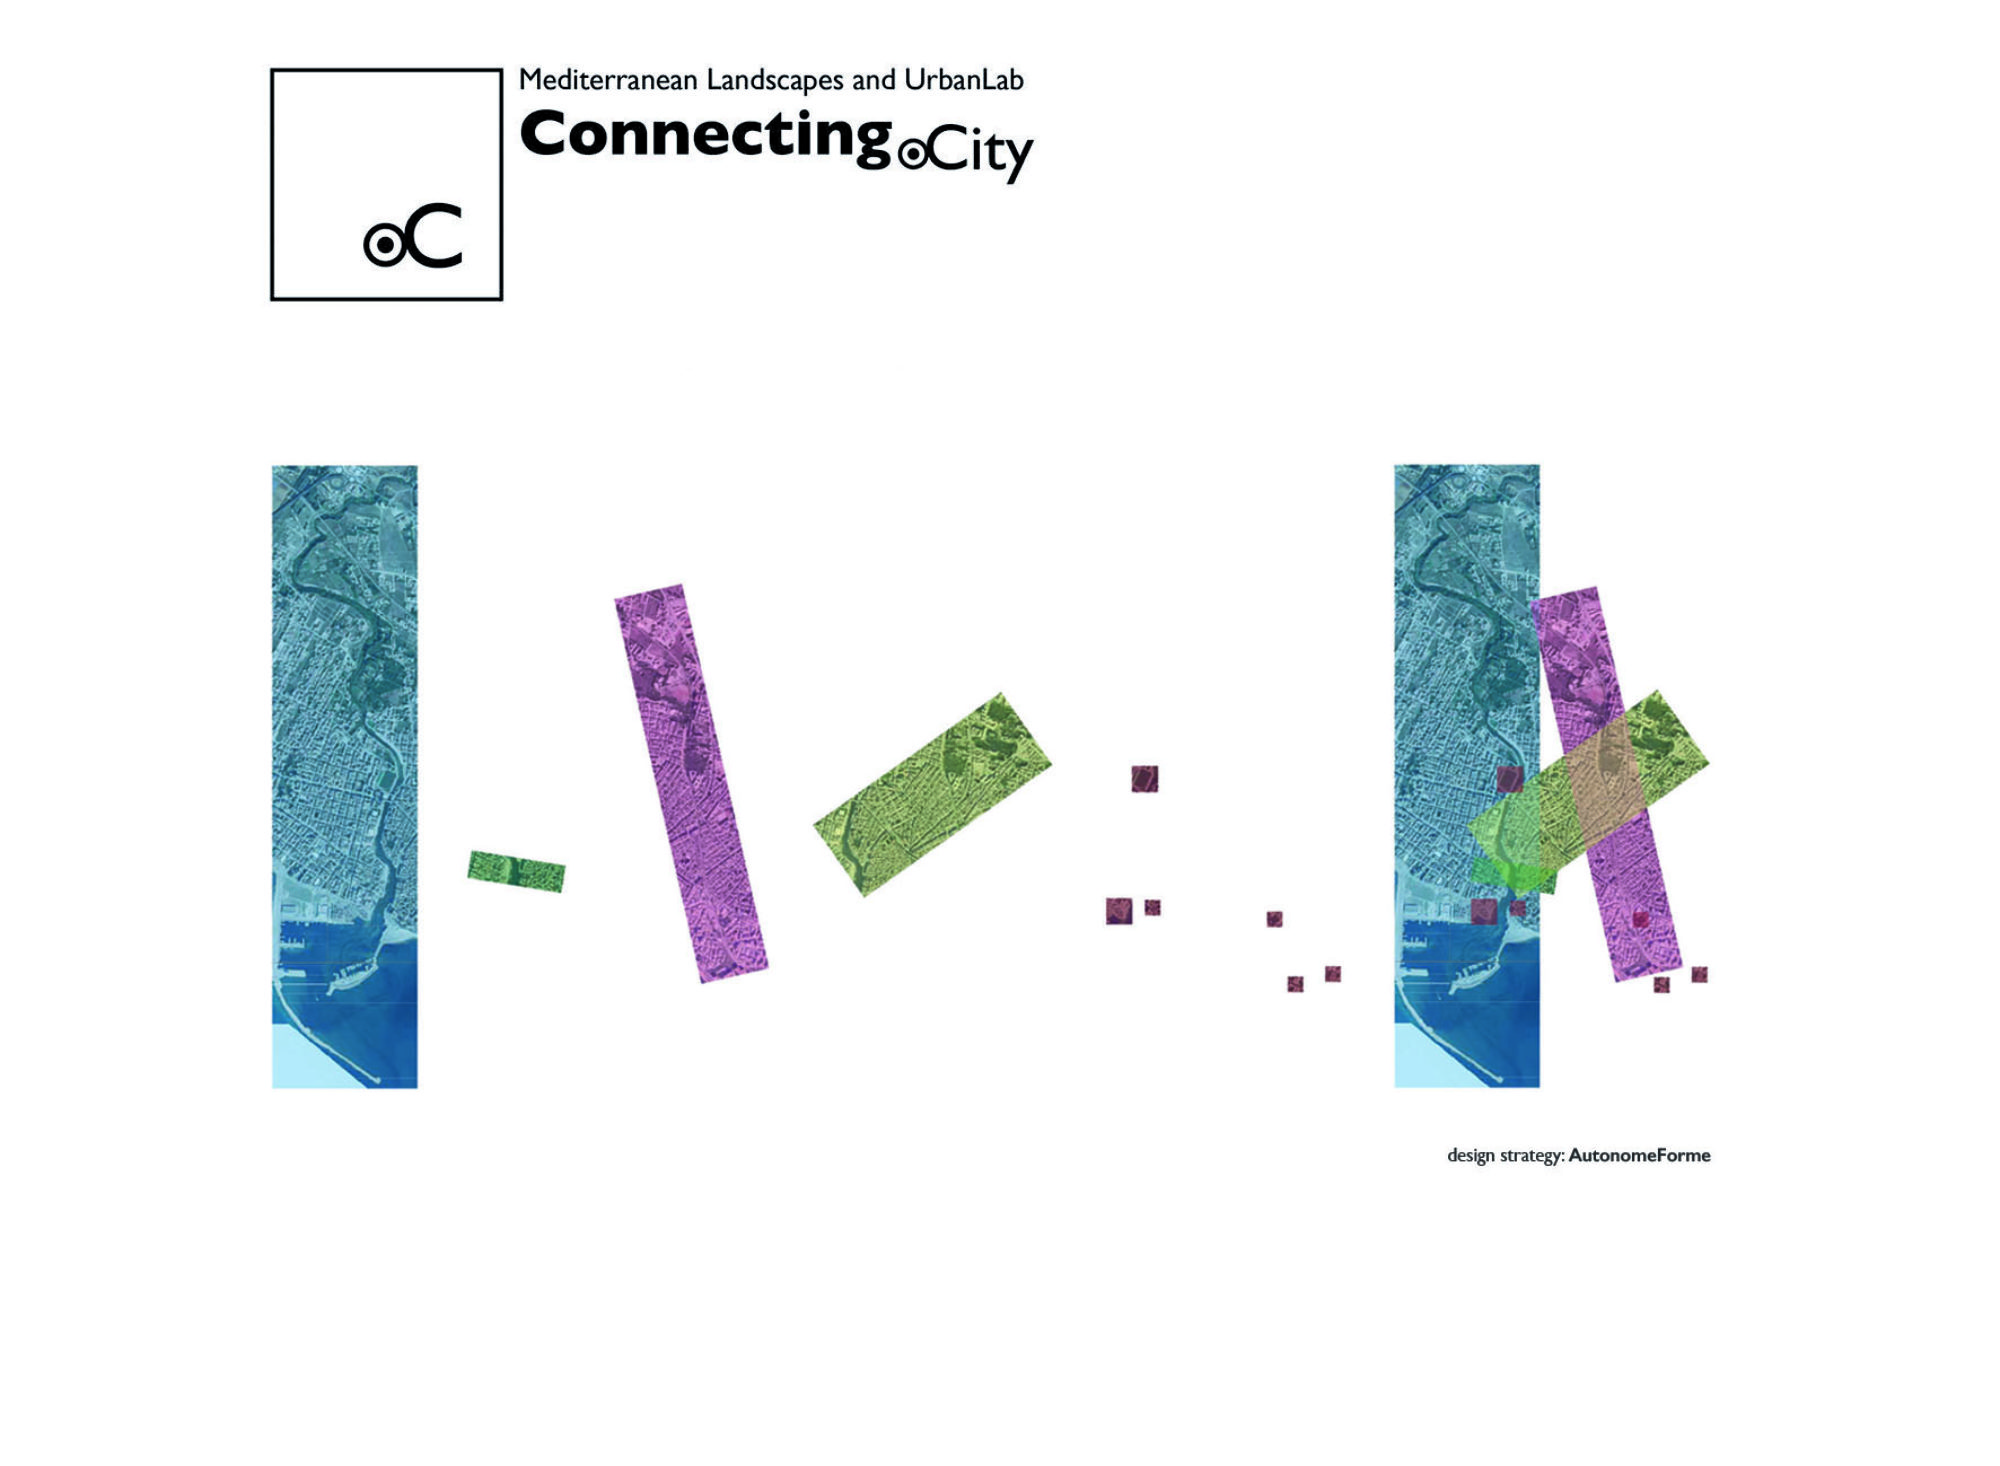 Connecting City